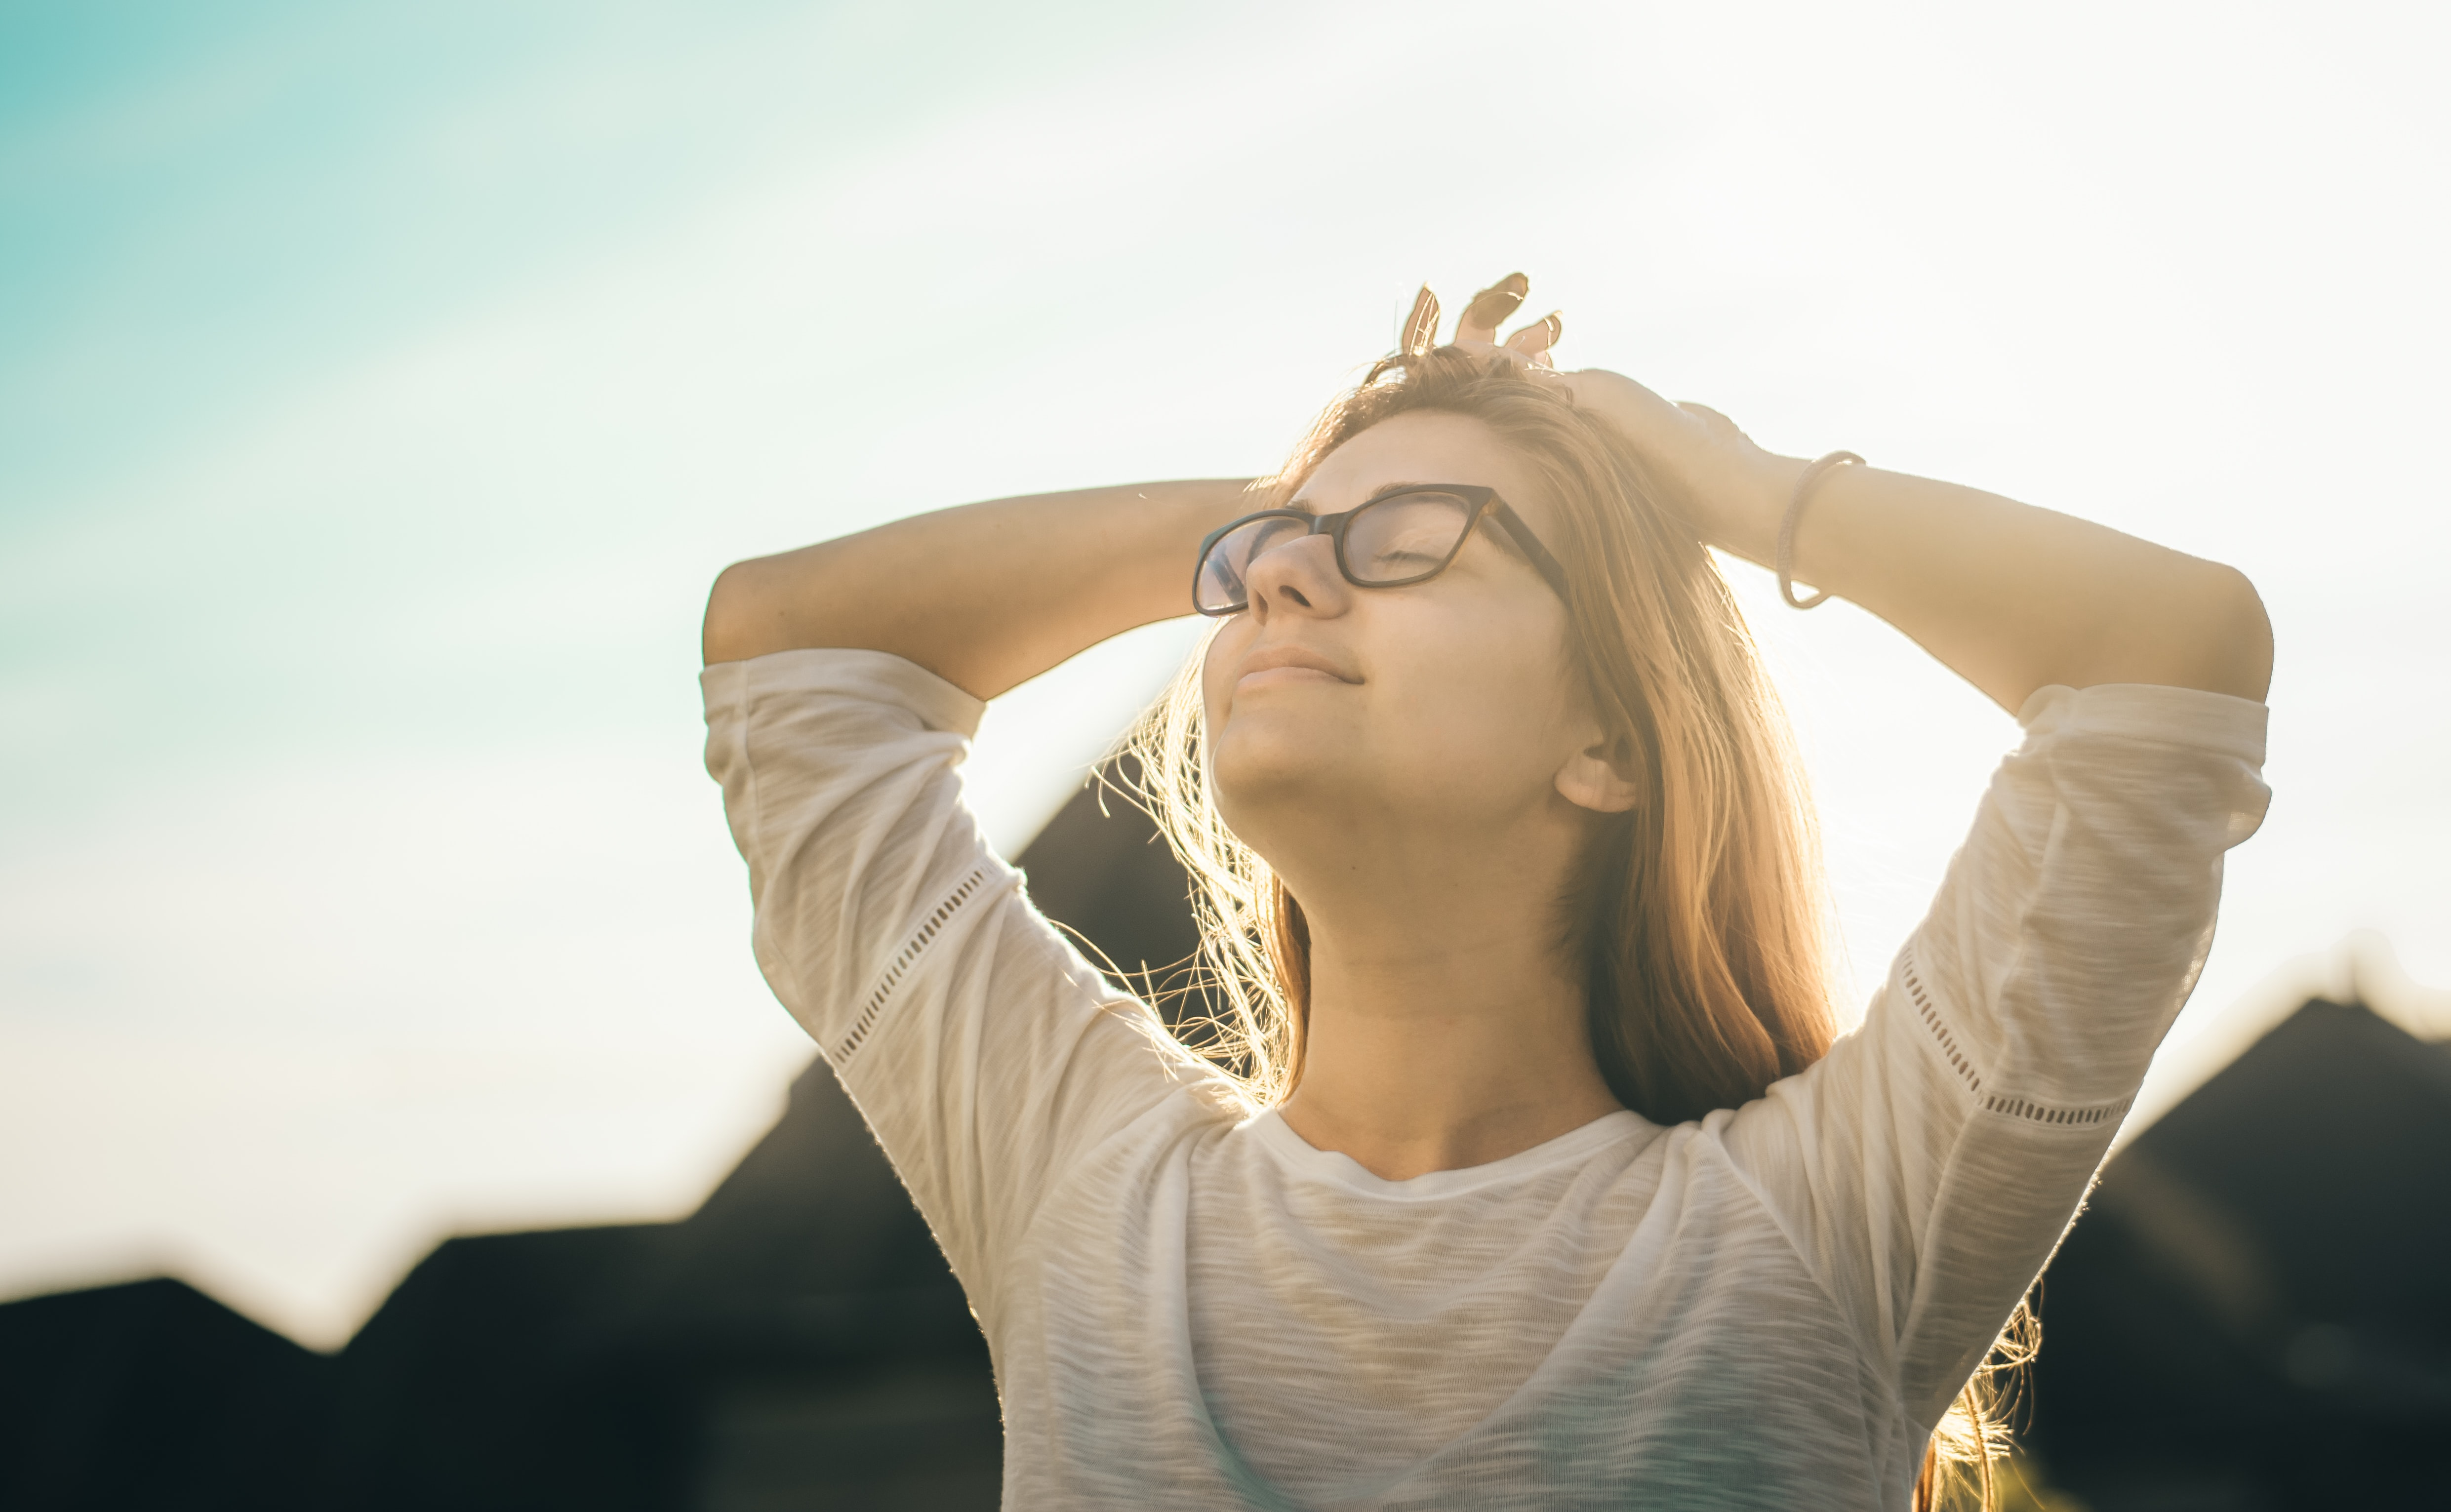 Young woman with eyes closed, turns her face up to the sun, with her hands on her head